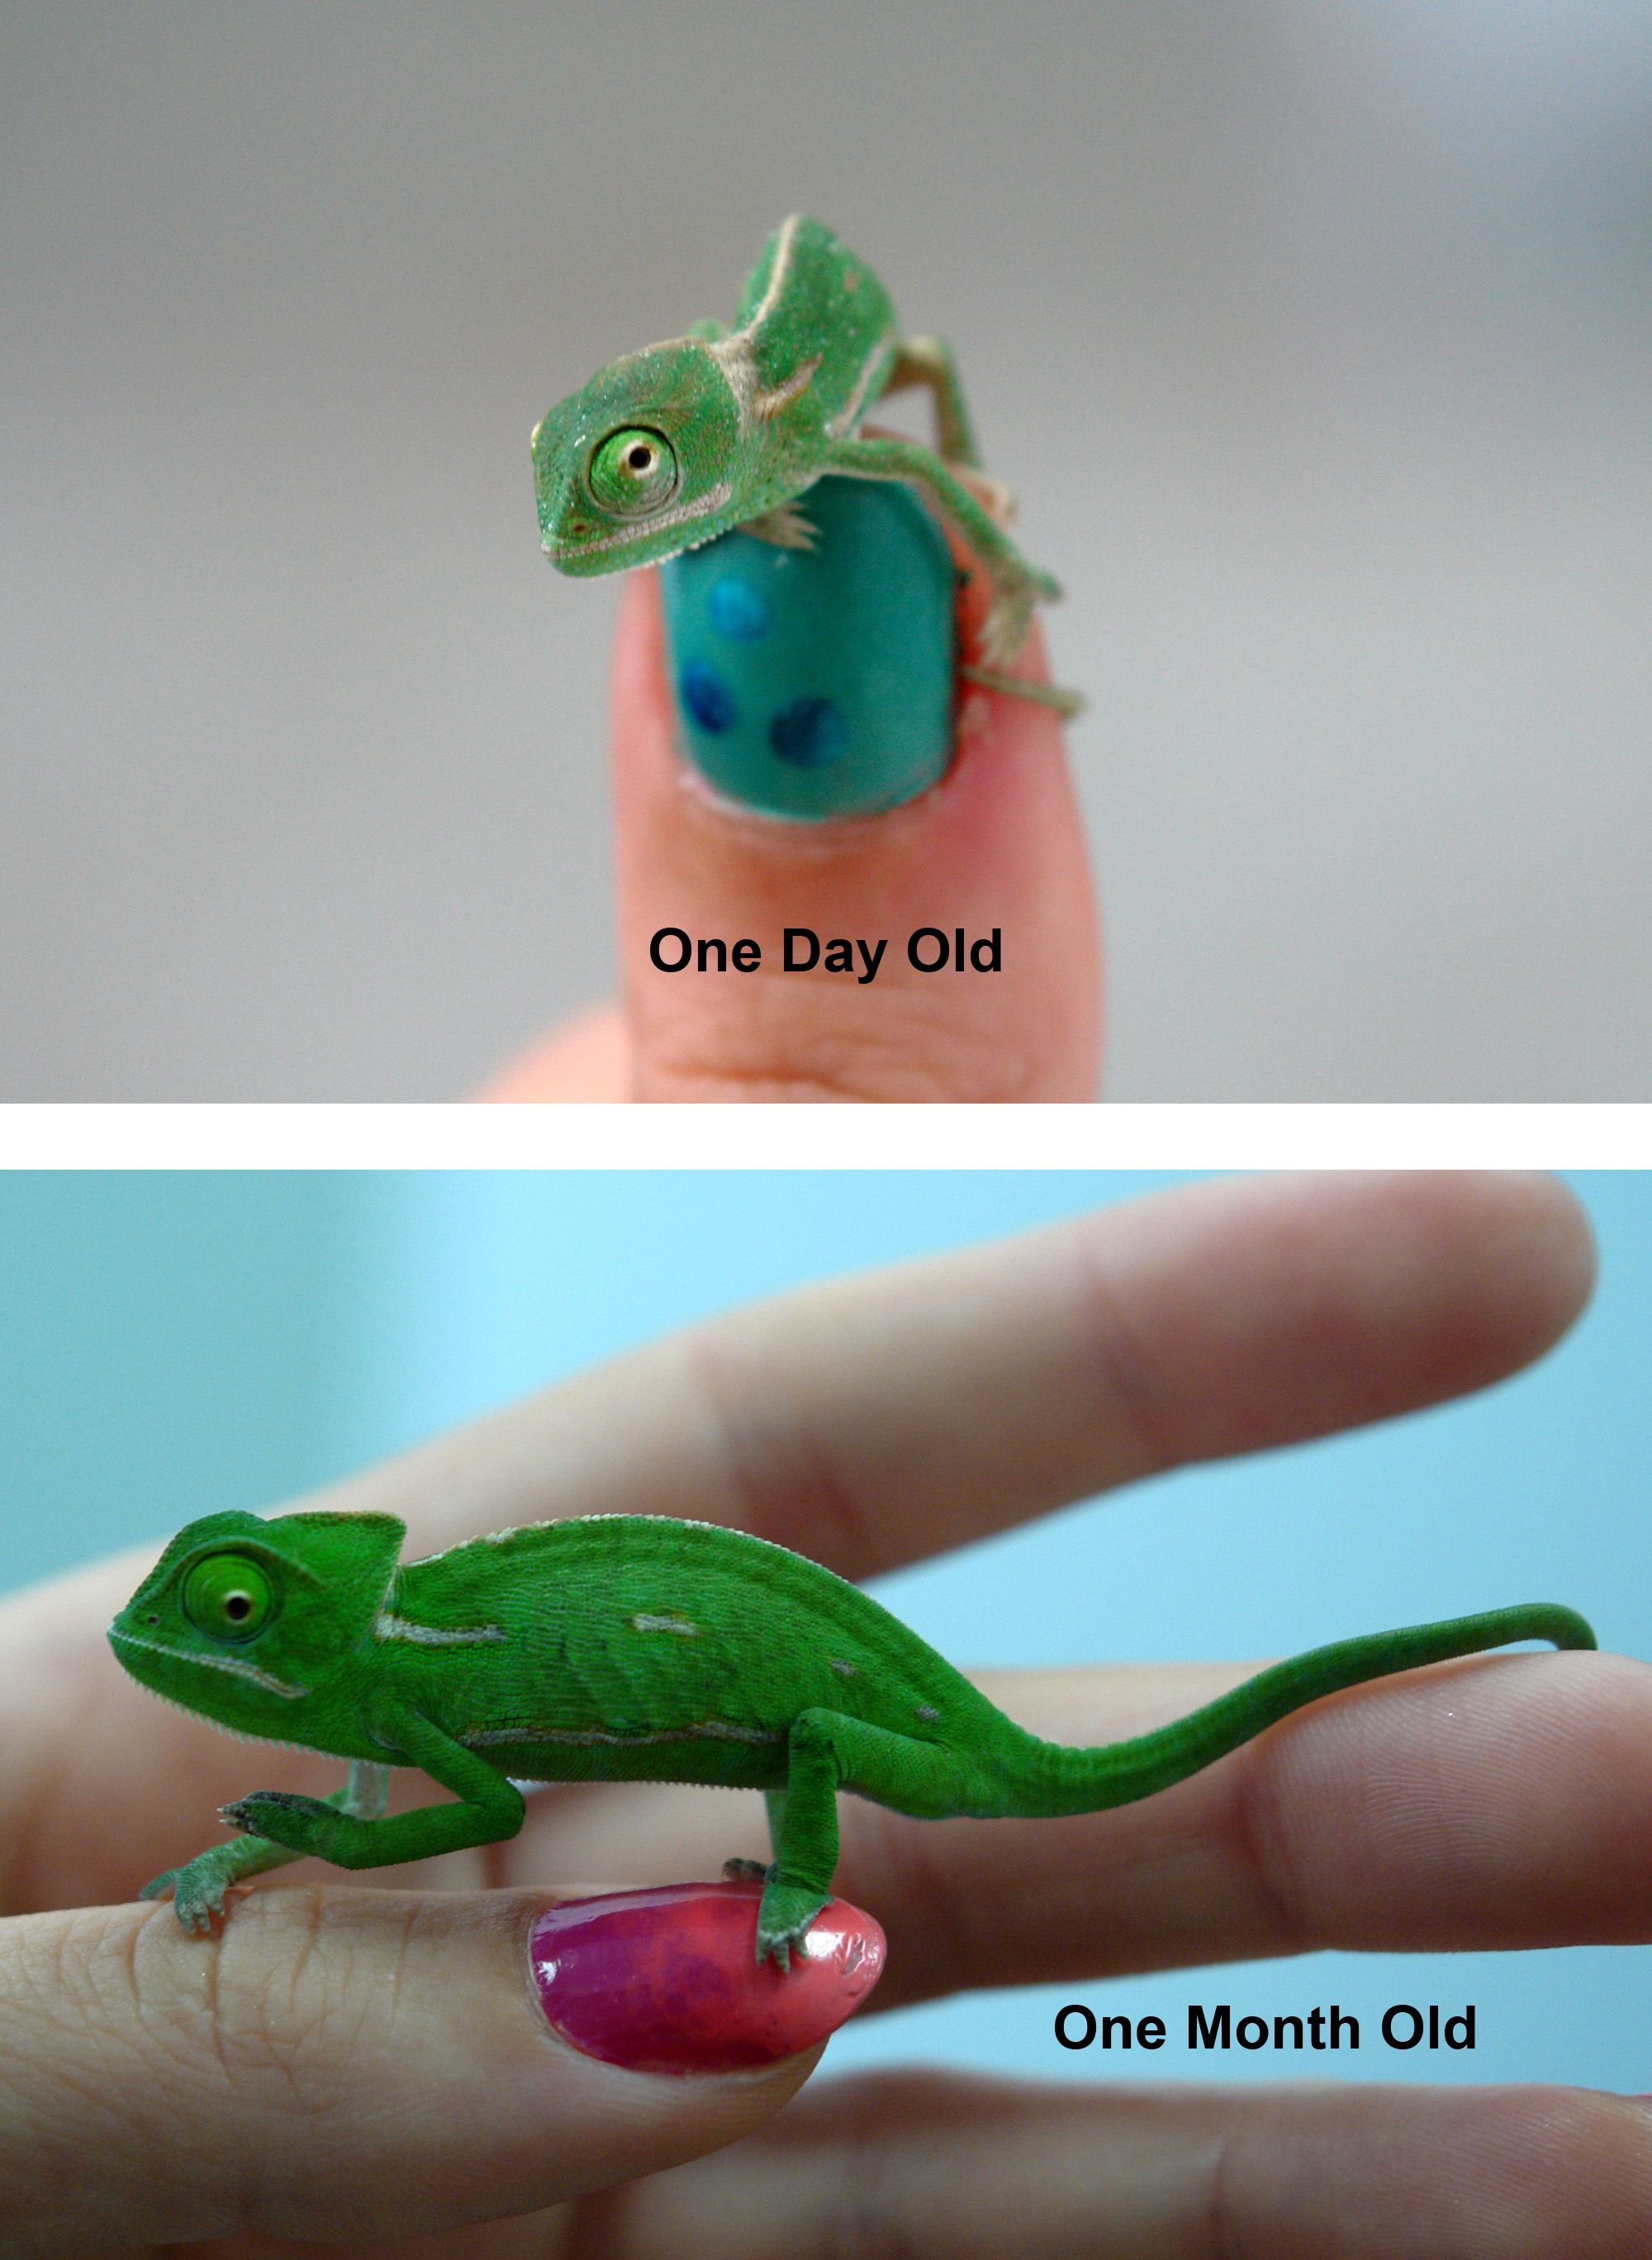 Comparison Of A Hatchling Baby Veiled Chameleon To The